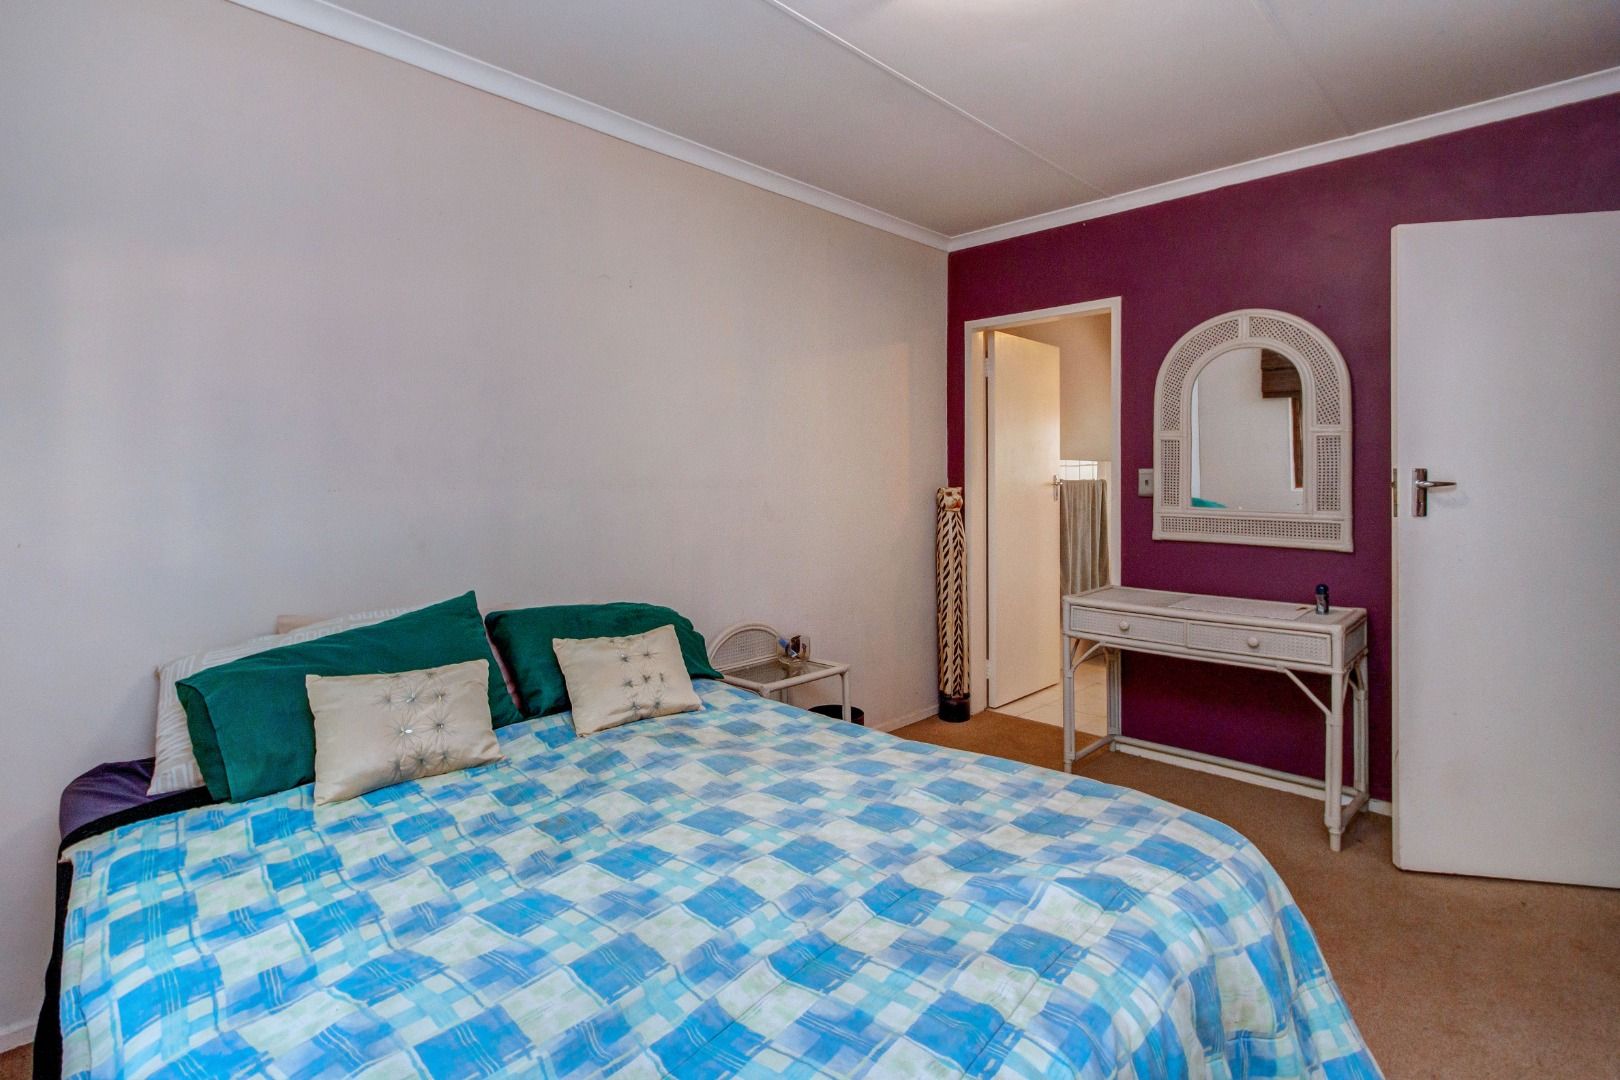 3 Bedroom Townhouse For Sale in Fourways